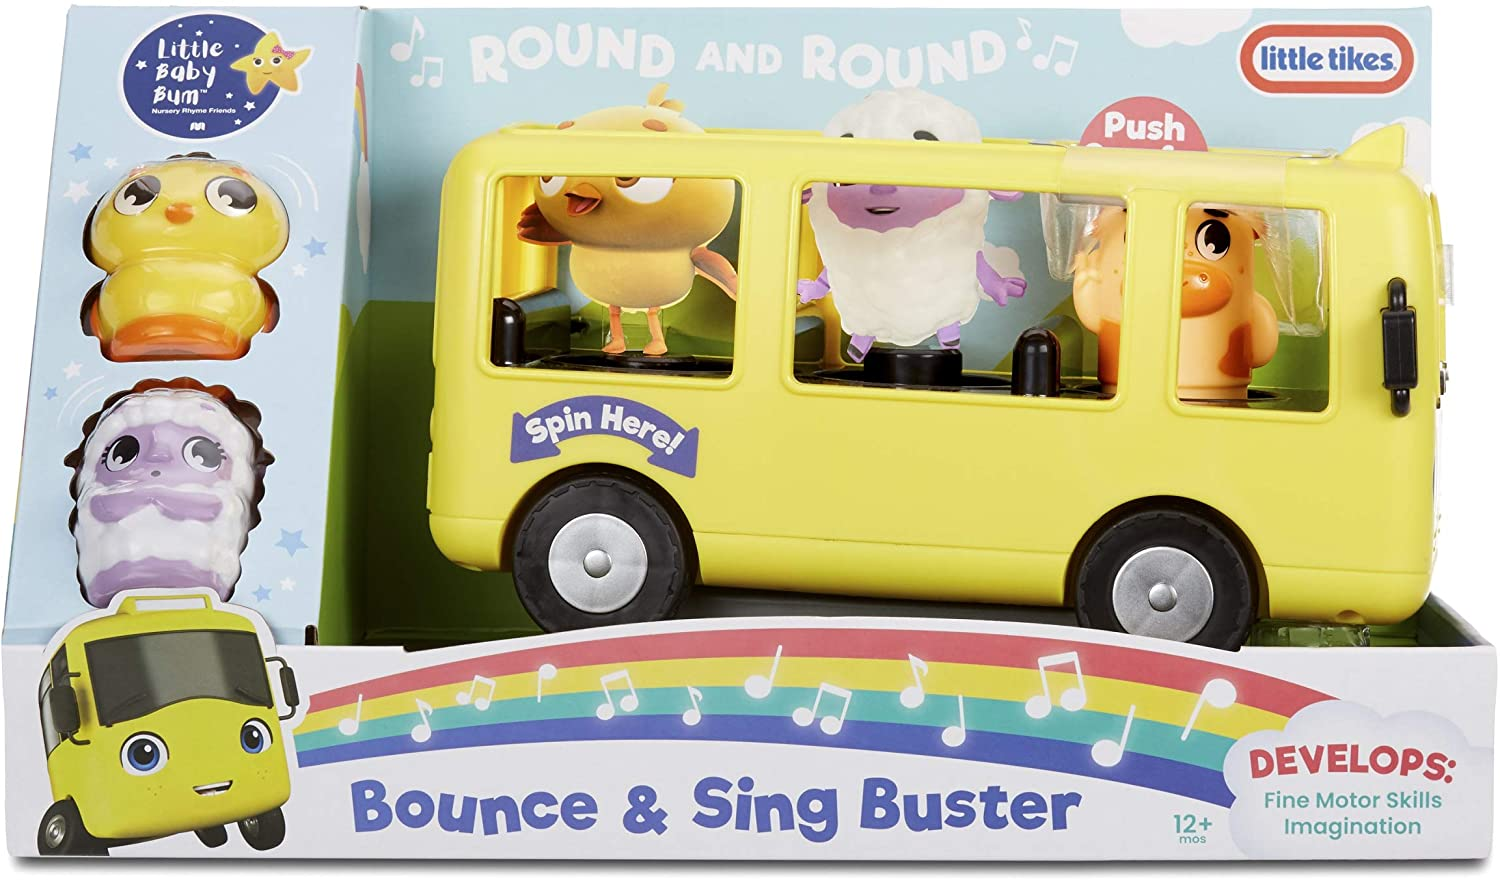 Little Tikes Baby Bum Bouncer & Sing Buster, Multicolor